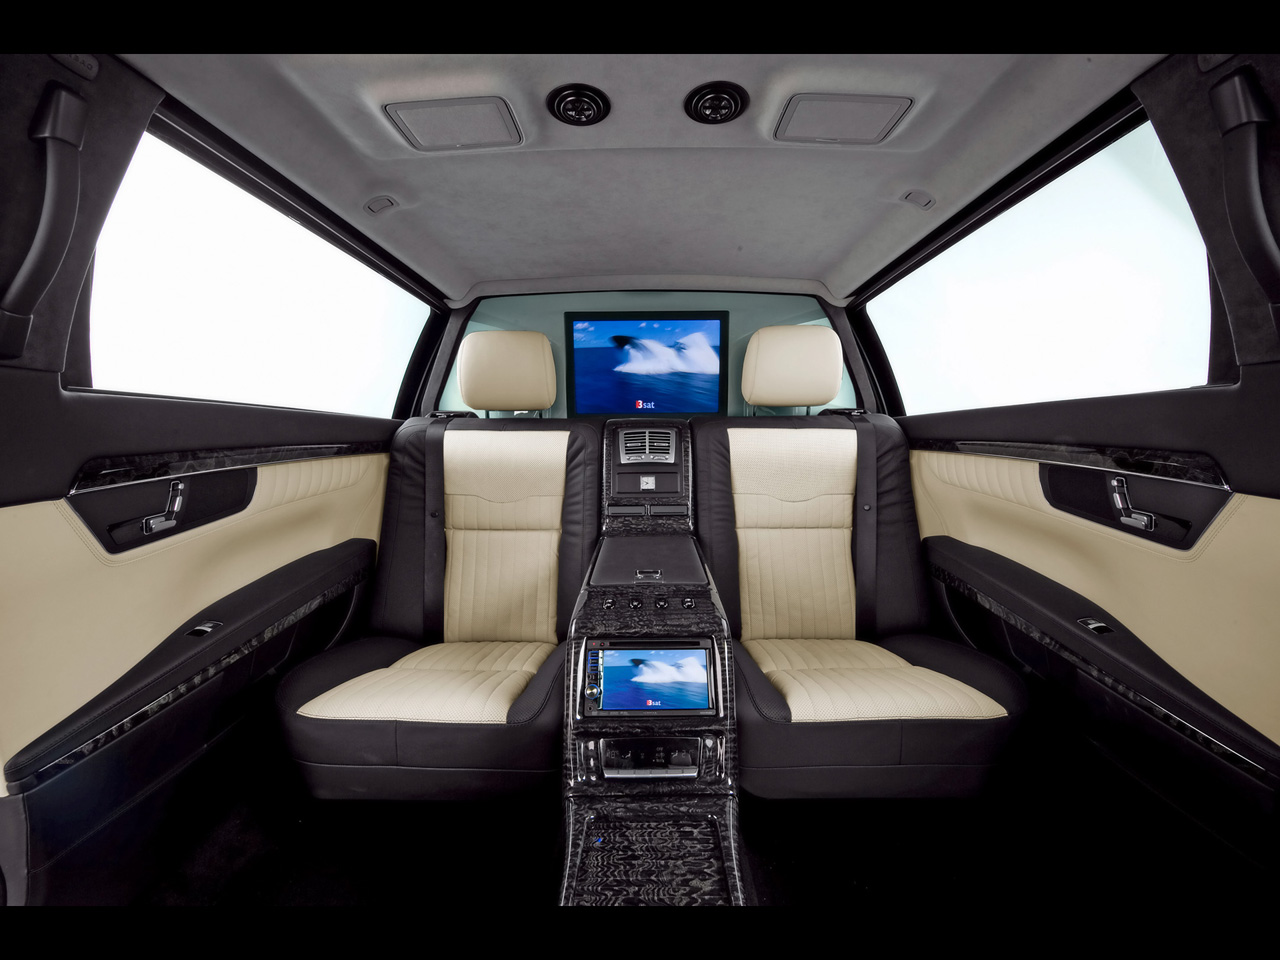 Mercedes-benz limousine photo - 2